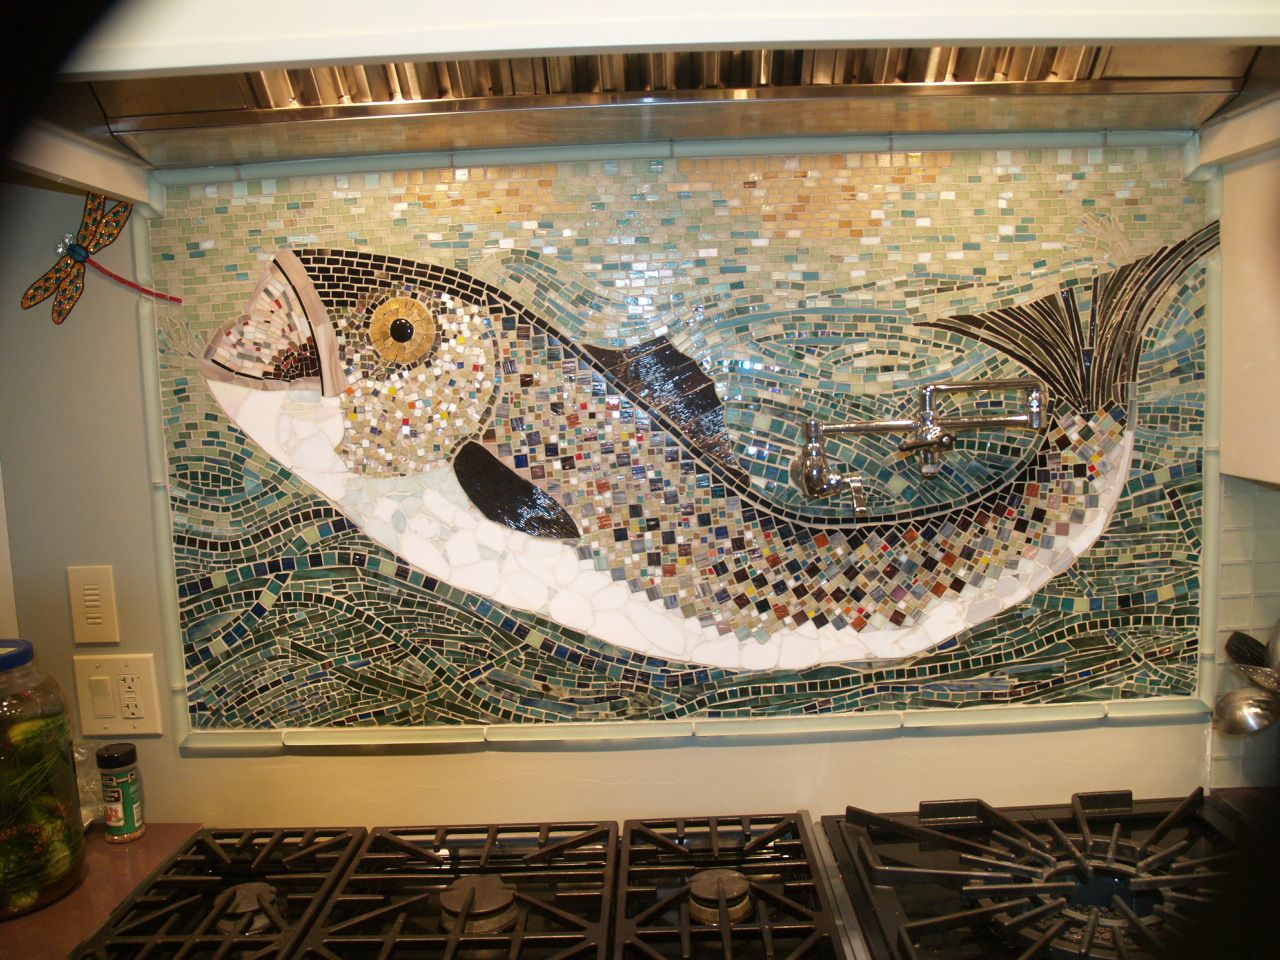 Sea bass backsplash